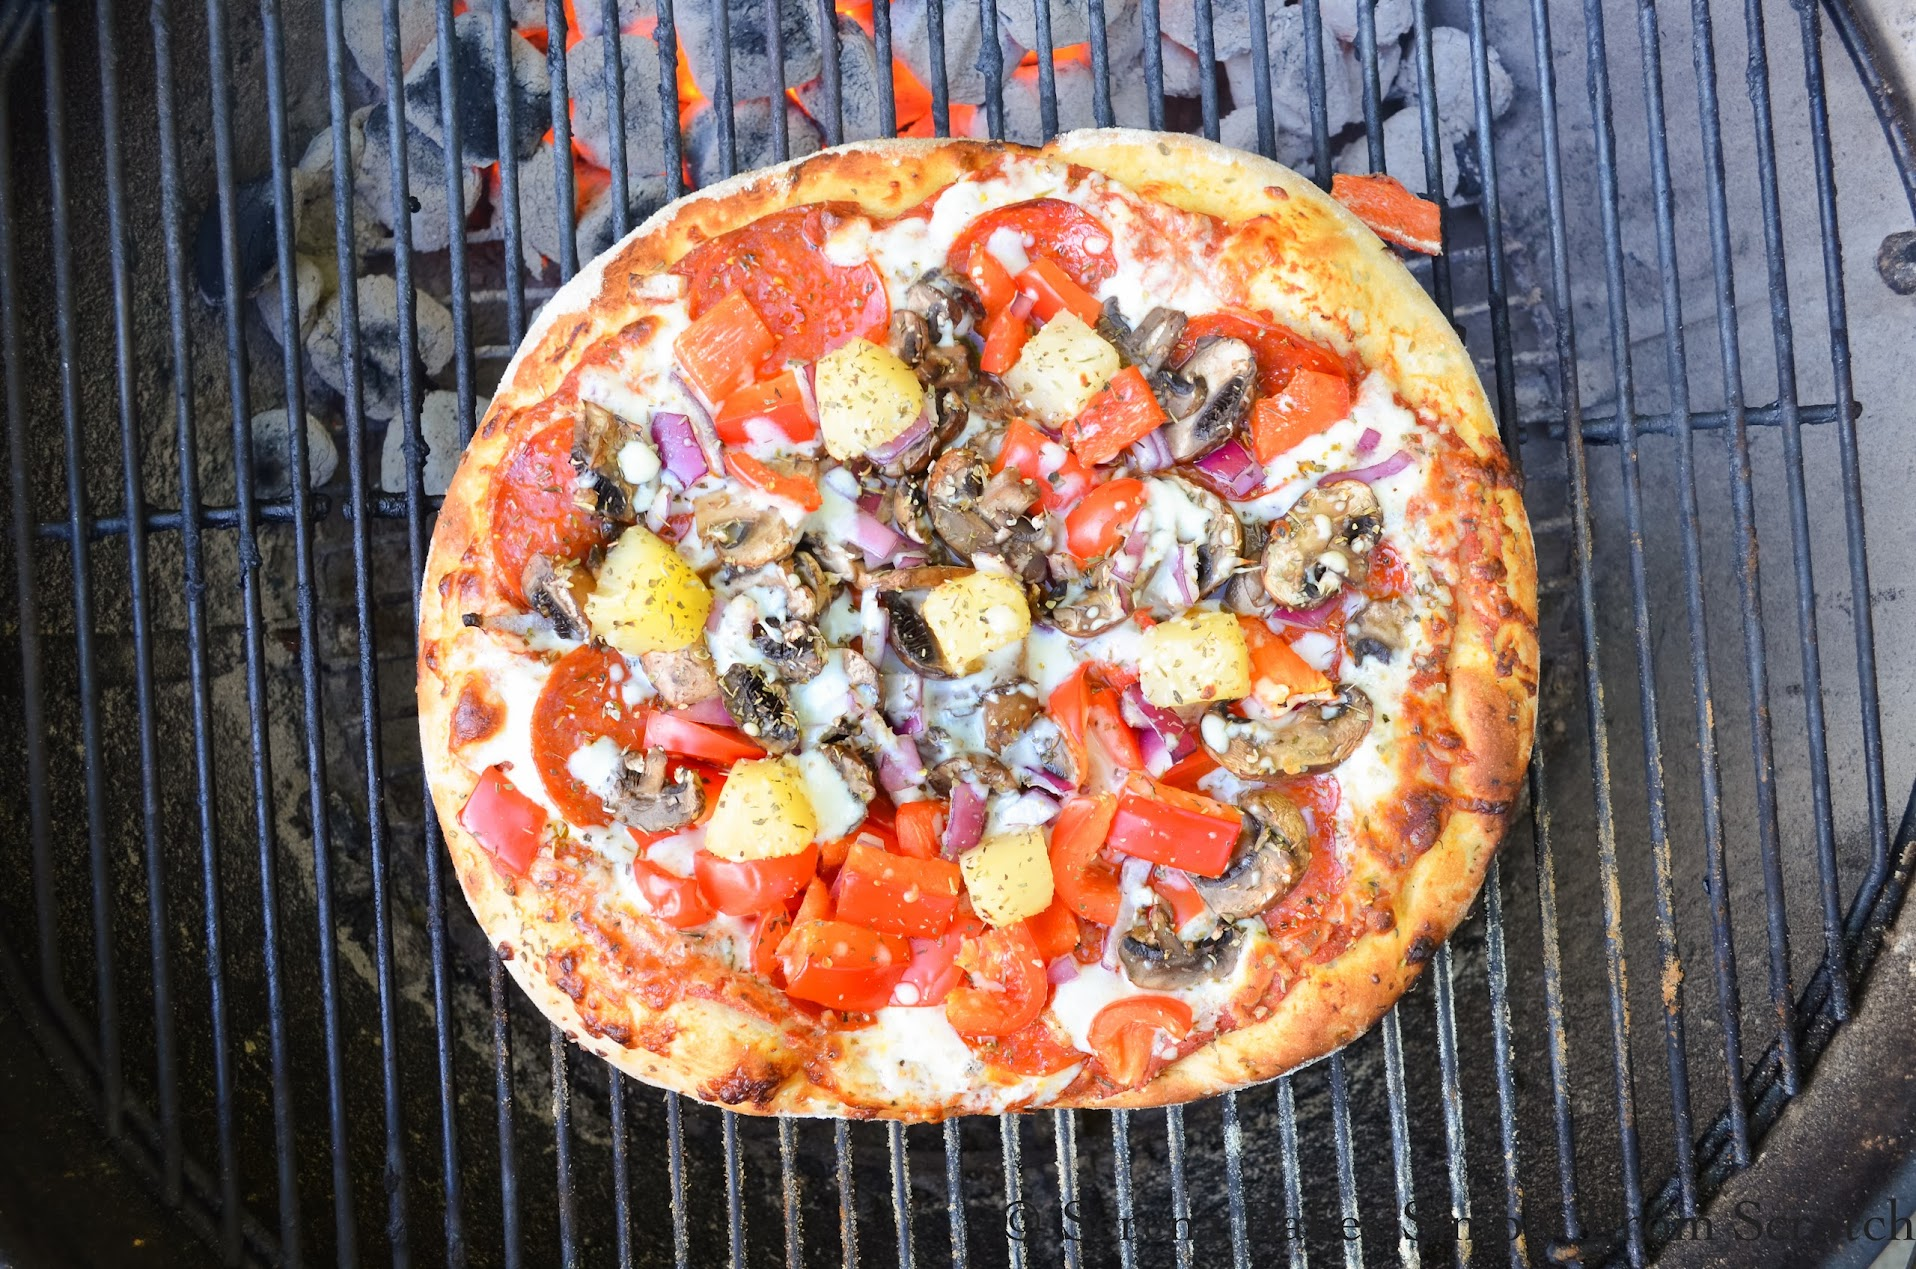 Charcoal Grilled Pizza is perfect dinner for a hot day.